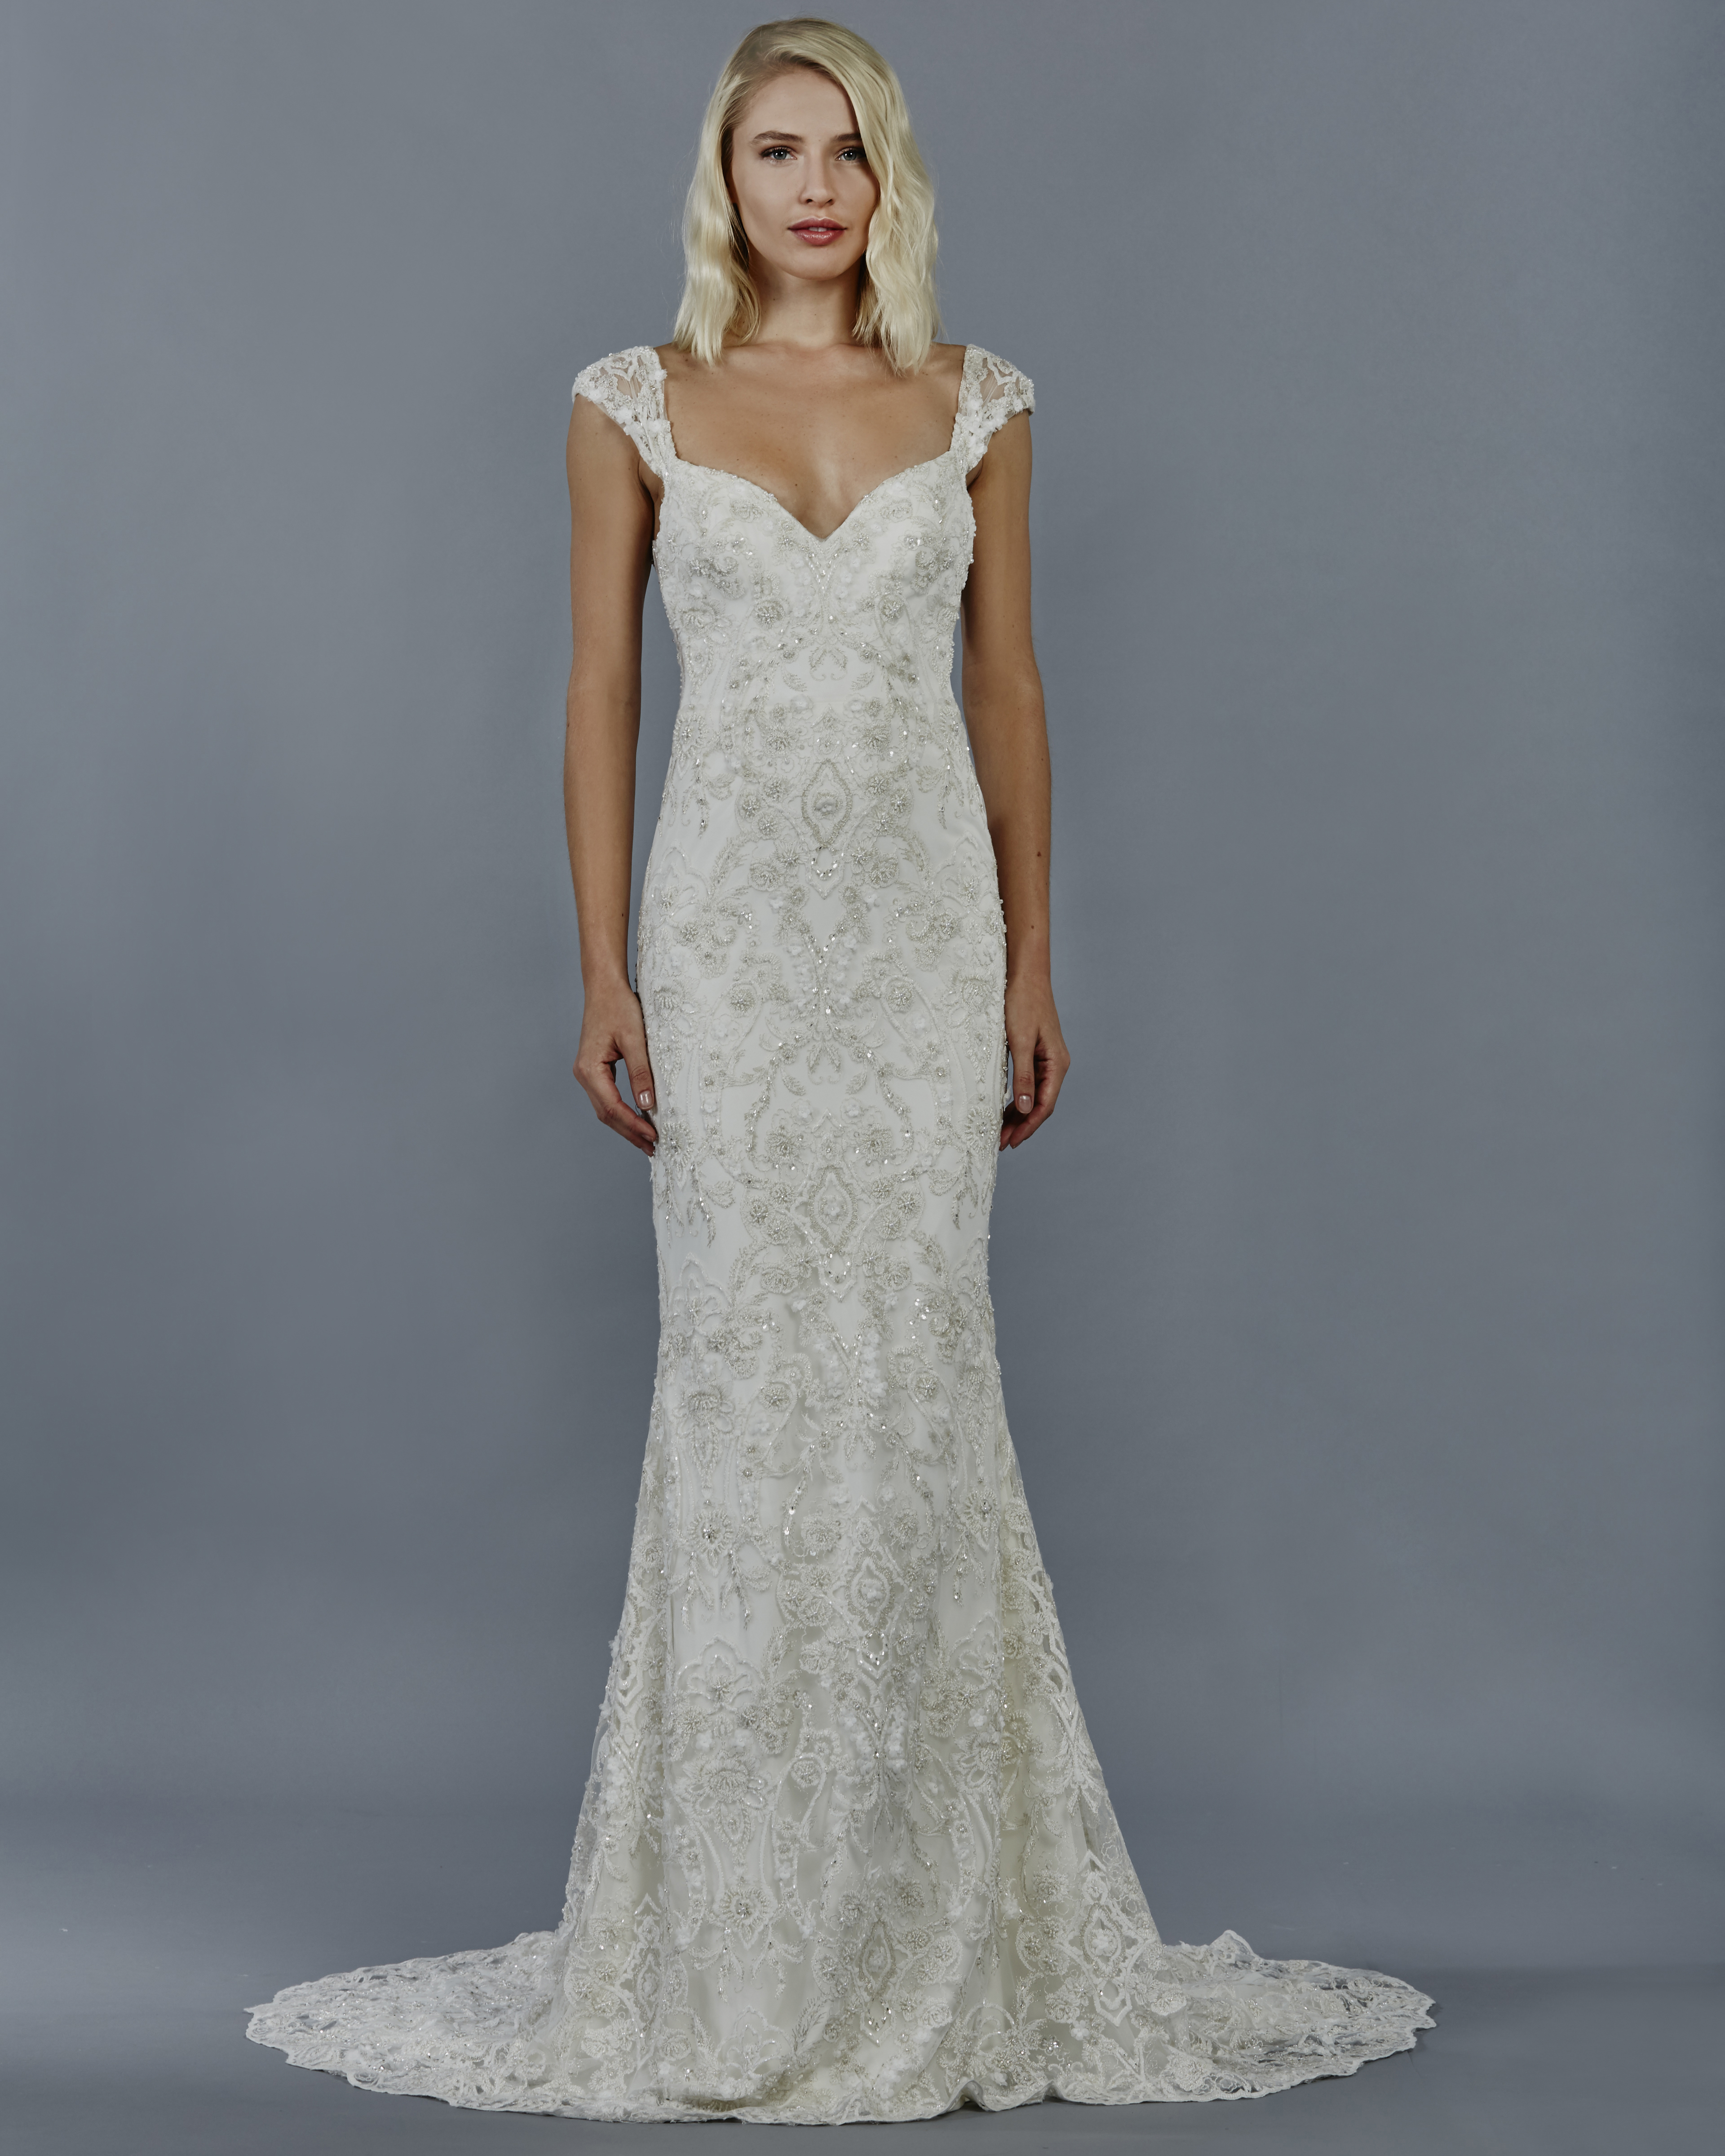 The Bridal Collection Real Bride: KELLY FAETANINI FALL 2018 BRIDAL COLLECTION